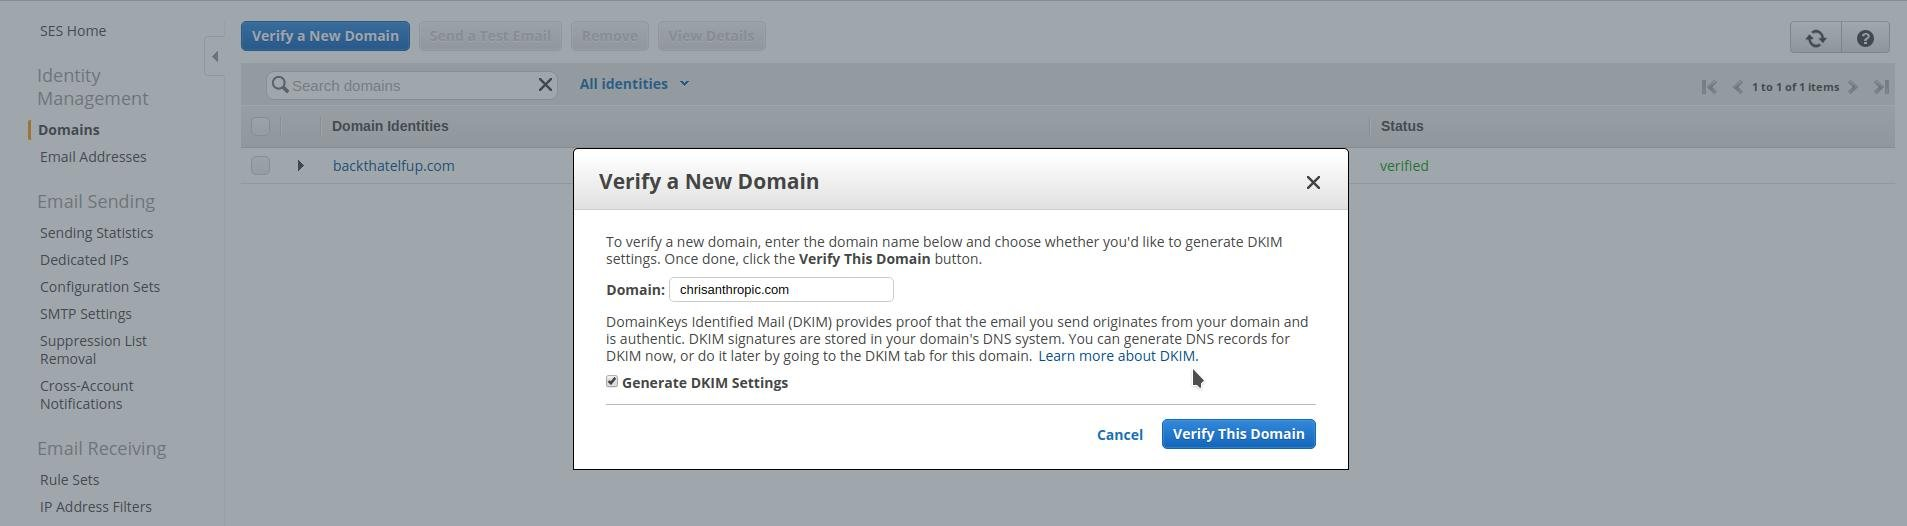 Verify a New Domain